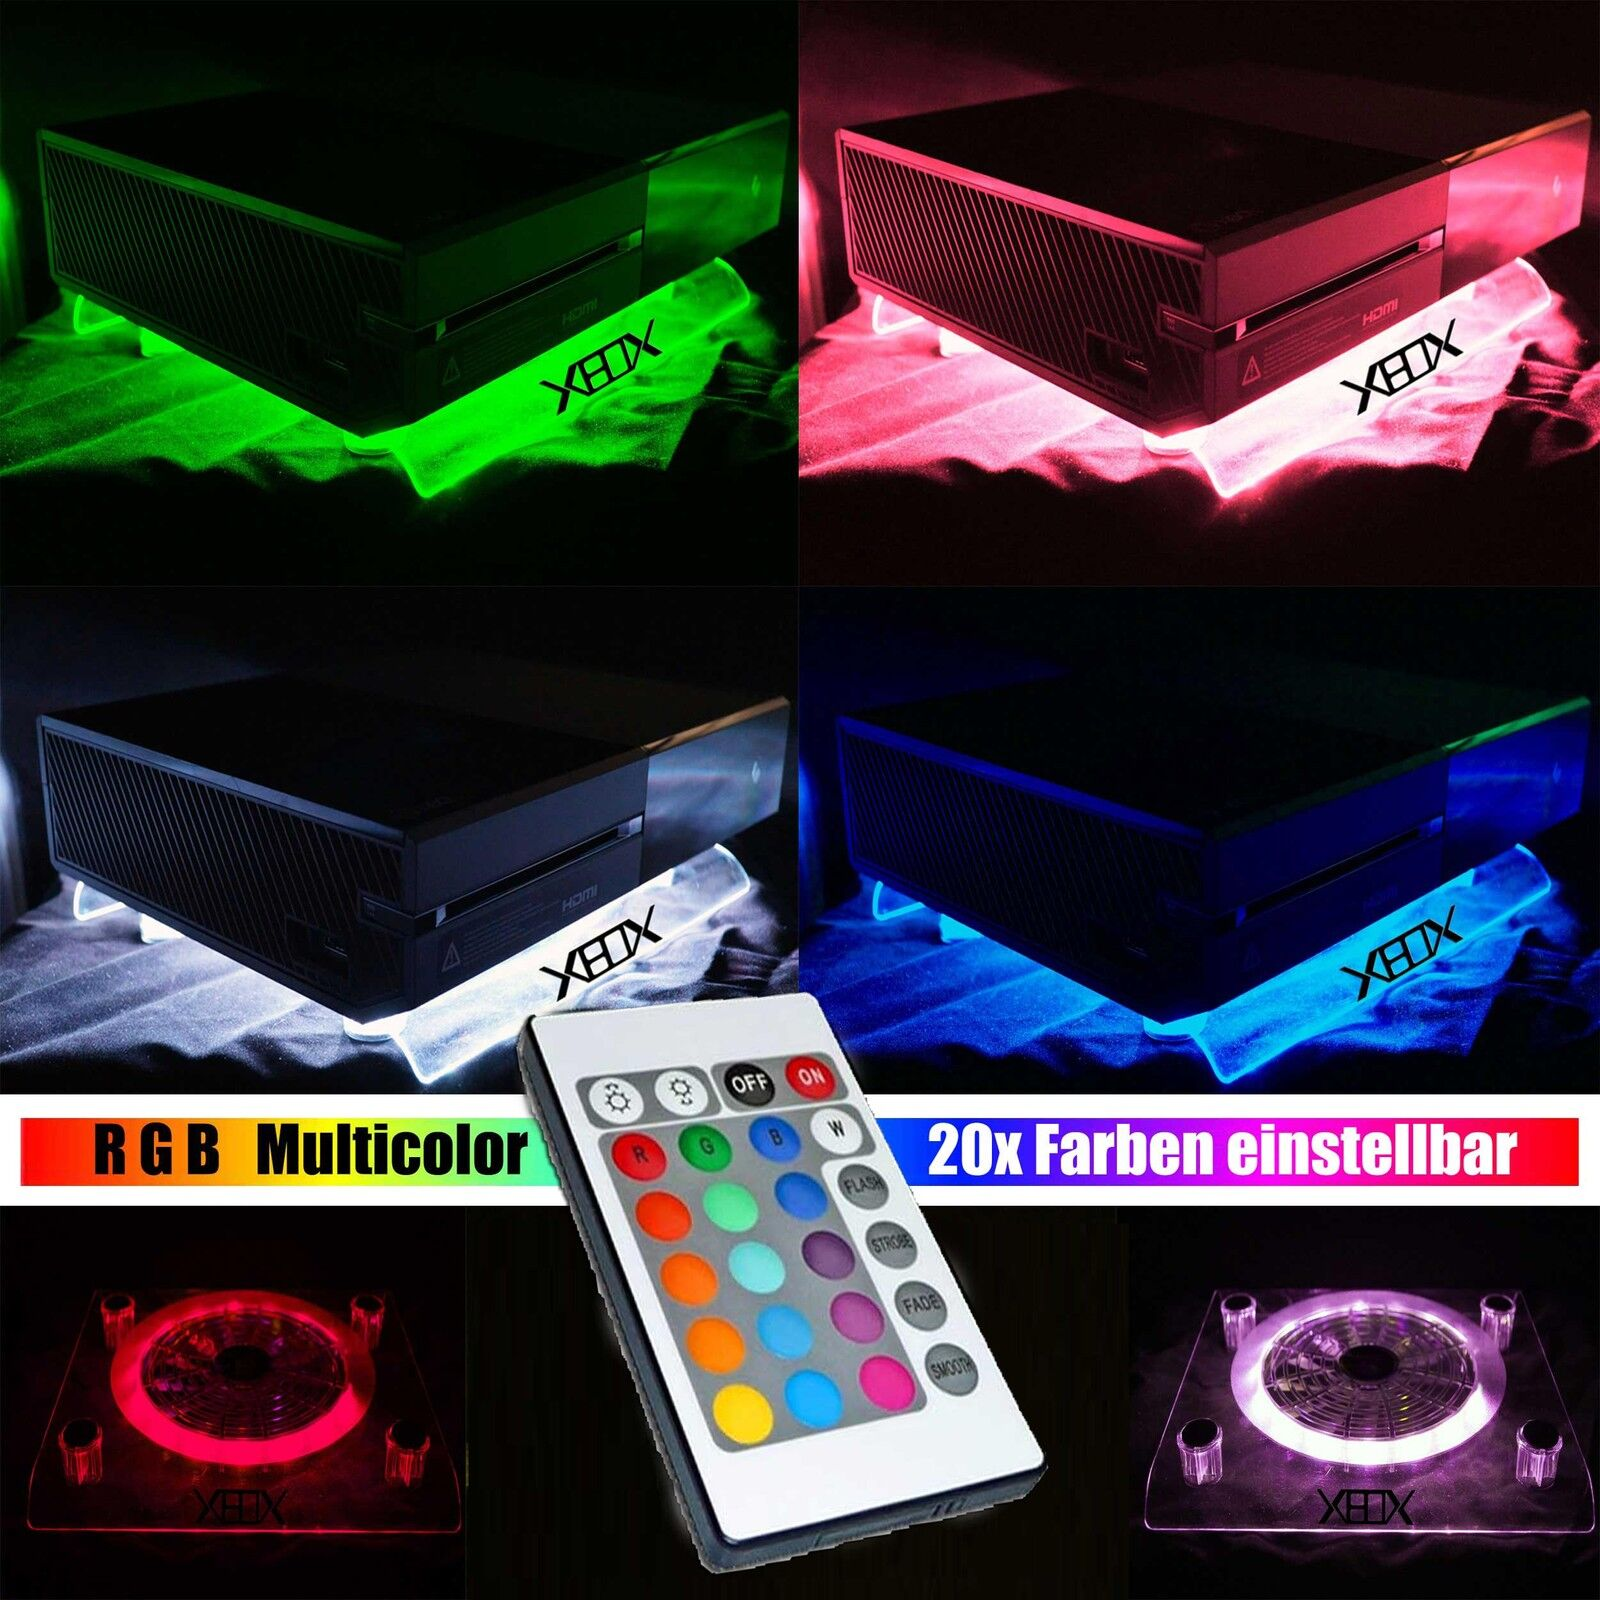 RGB USB Design Cooler Cooling Fan Pad + IR Remote controller Stand Xbox One 360